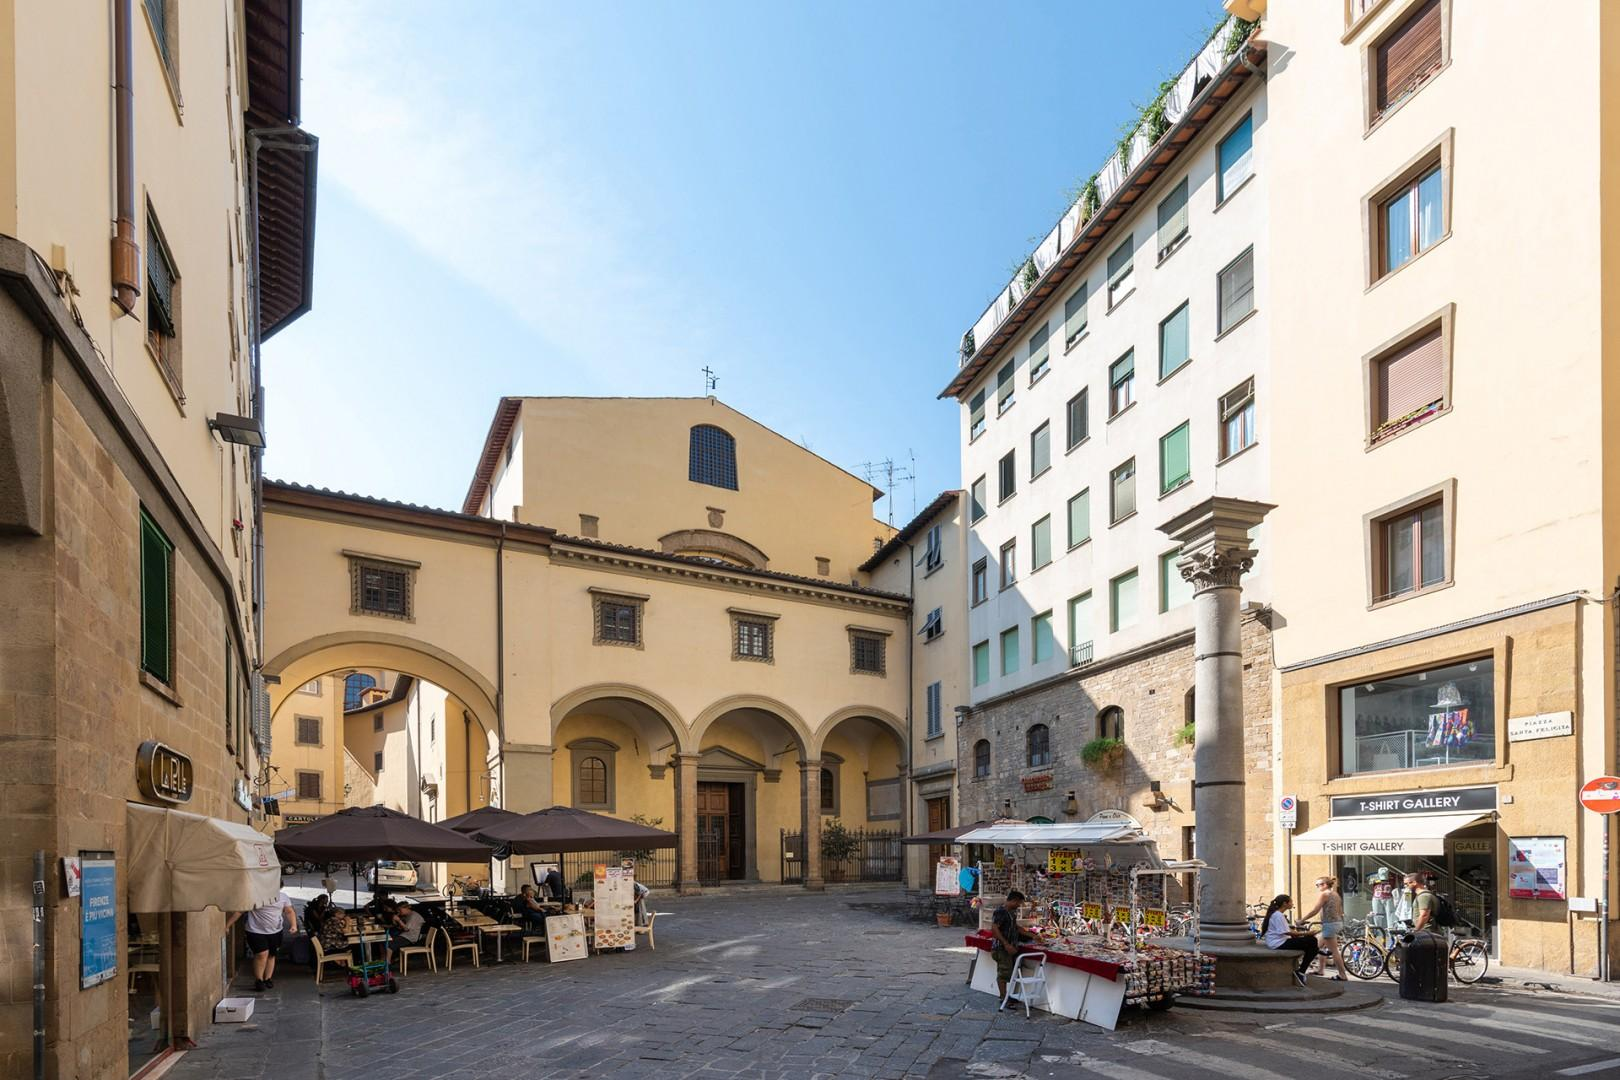 Santa Felicita is one of the oldest churches in Florence. Enjoy its art and stories of the Medicis